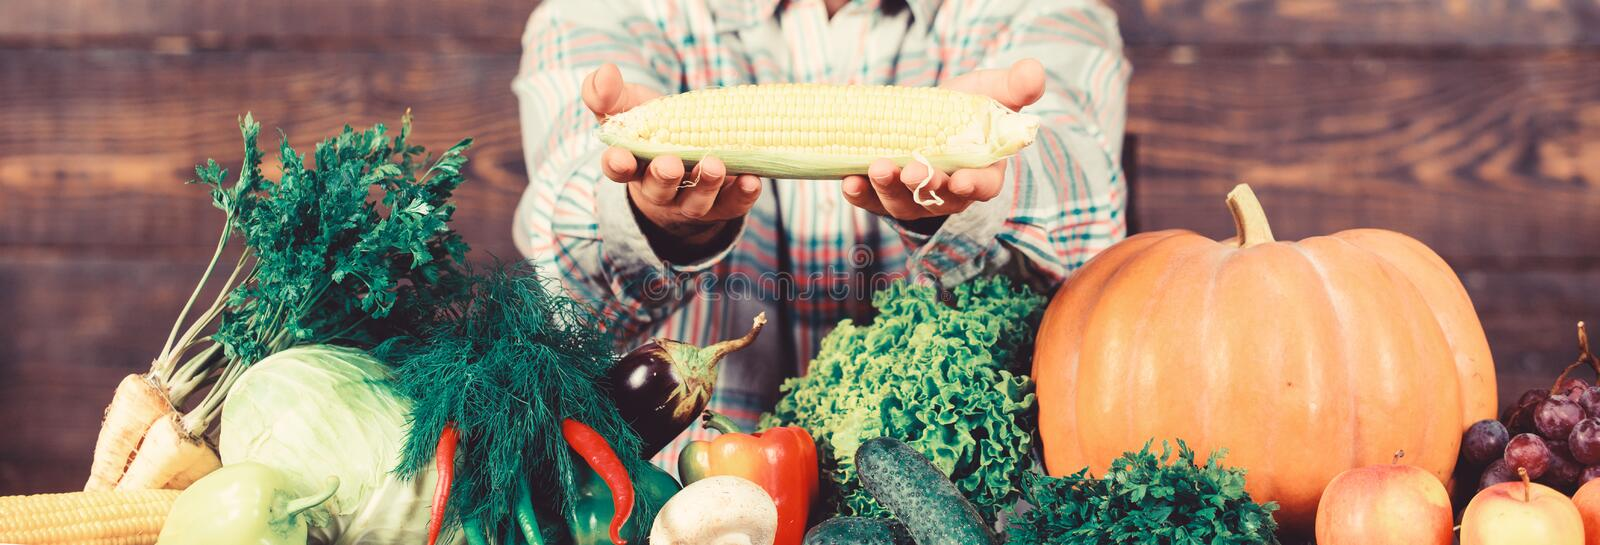 Healthy lifestyle. Farmer hold corncob or maize wooden background. Farmer presenting organic homegrown vegetables. Homegrown organic harvest benefits. Grow stock photo